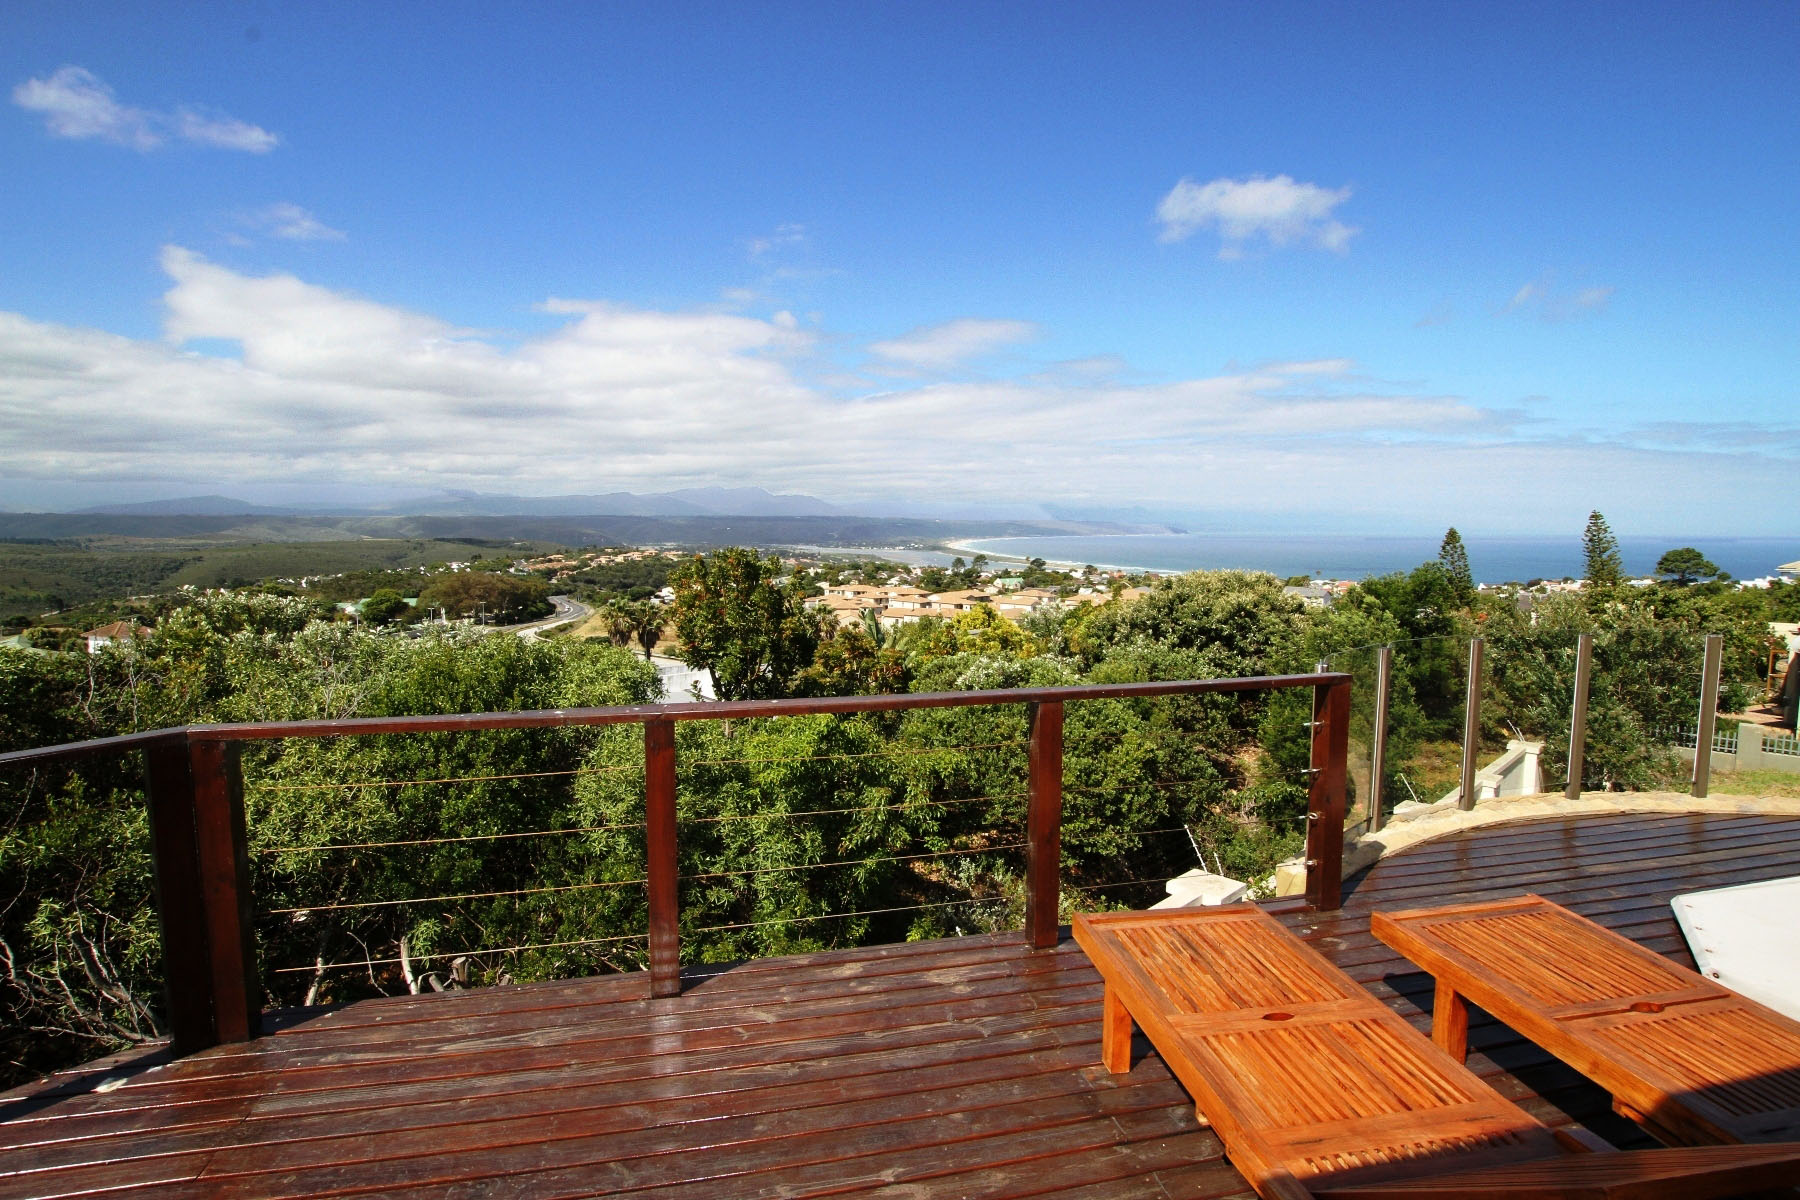 Single Family Home for Sale at Home with great views Plettenberg Bay, Western Cape, 6600 South Africa